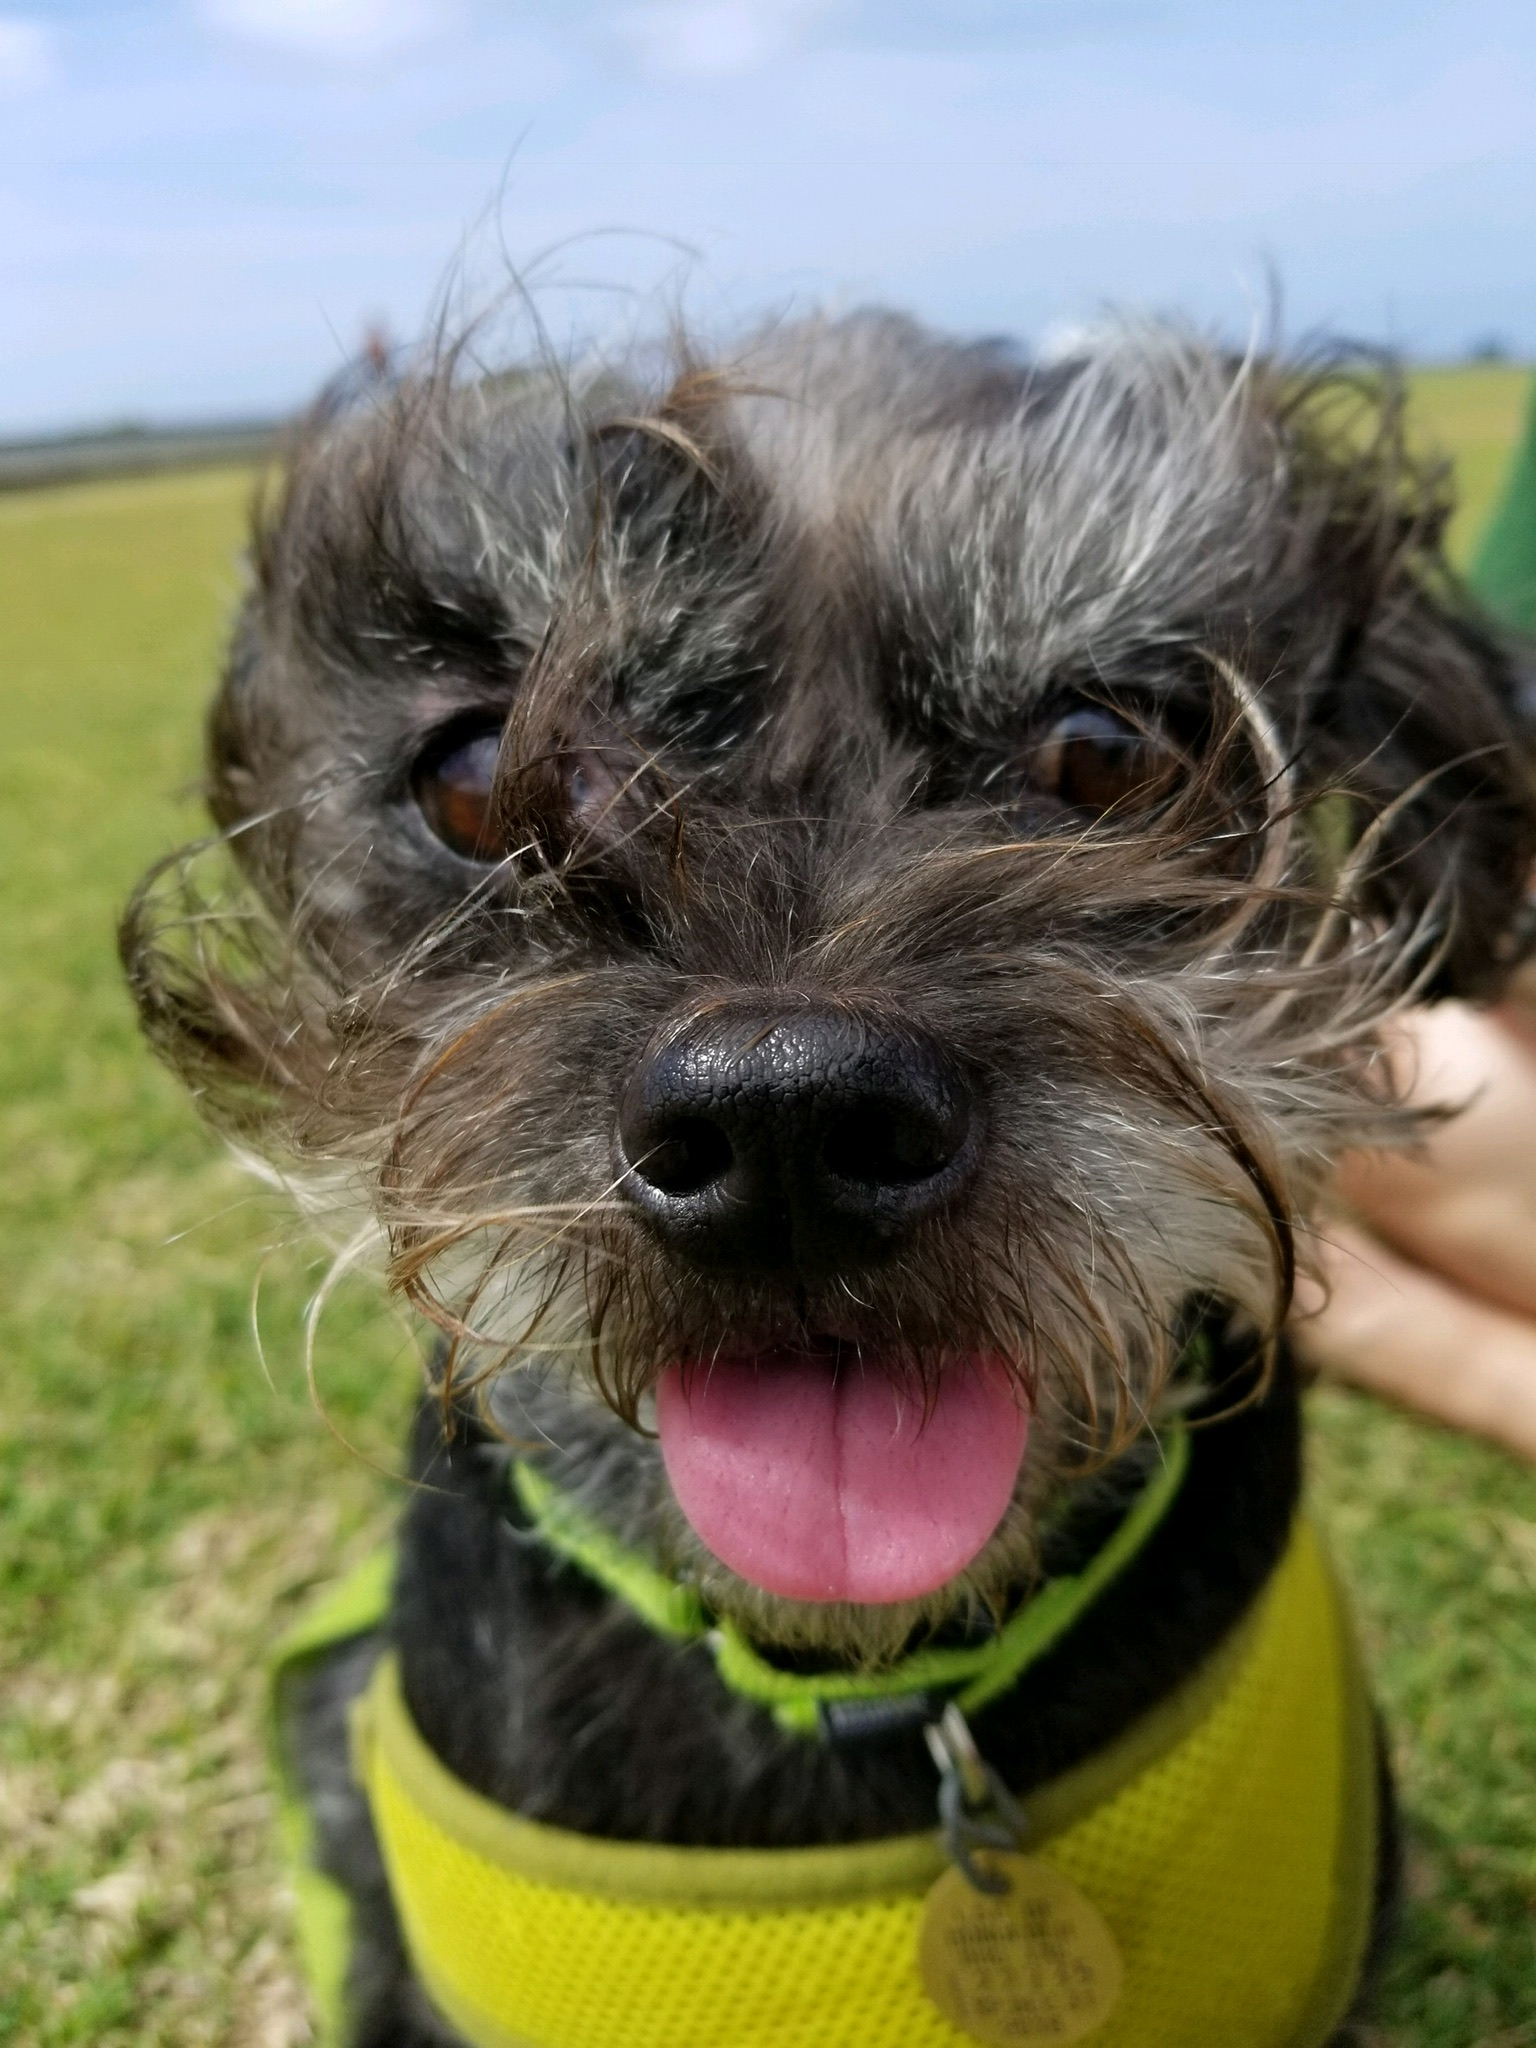 MUFFIN: 5 yr old Shih Tzu/Mini-Schnauzer mix. I'm from Kaimuki and my favorite thing to do is Explore the outdoors and chase the birds.